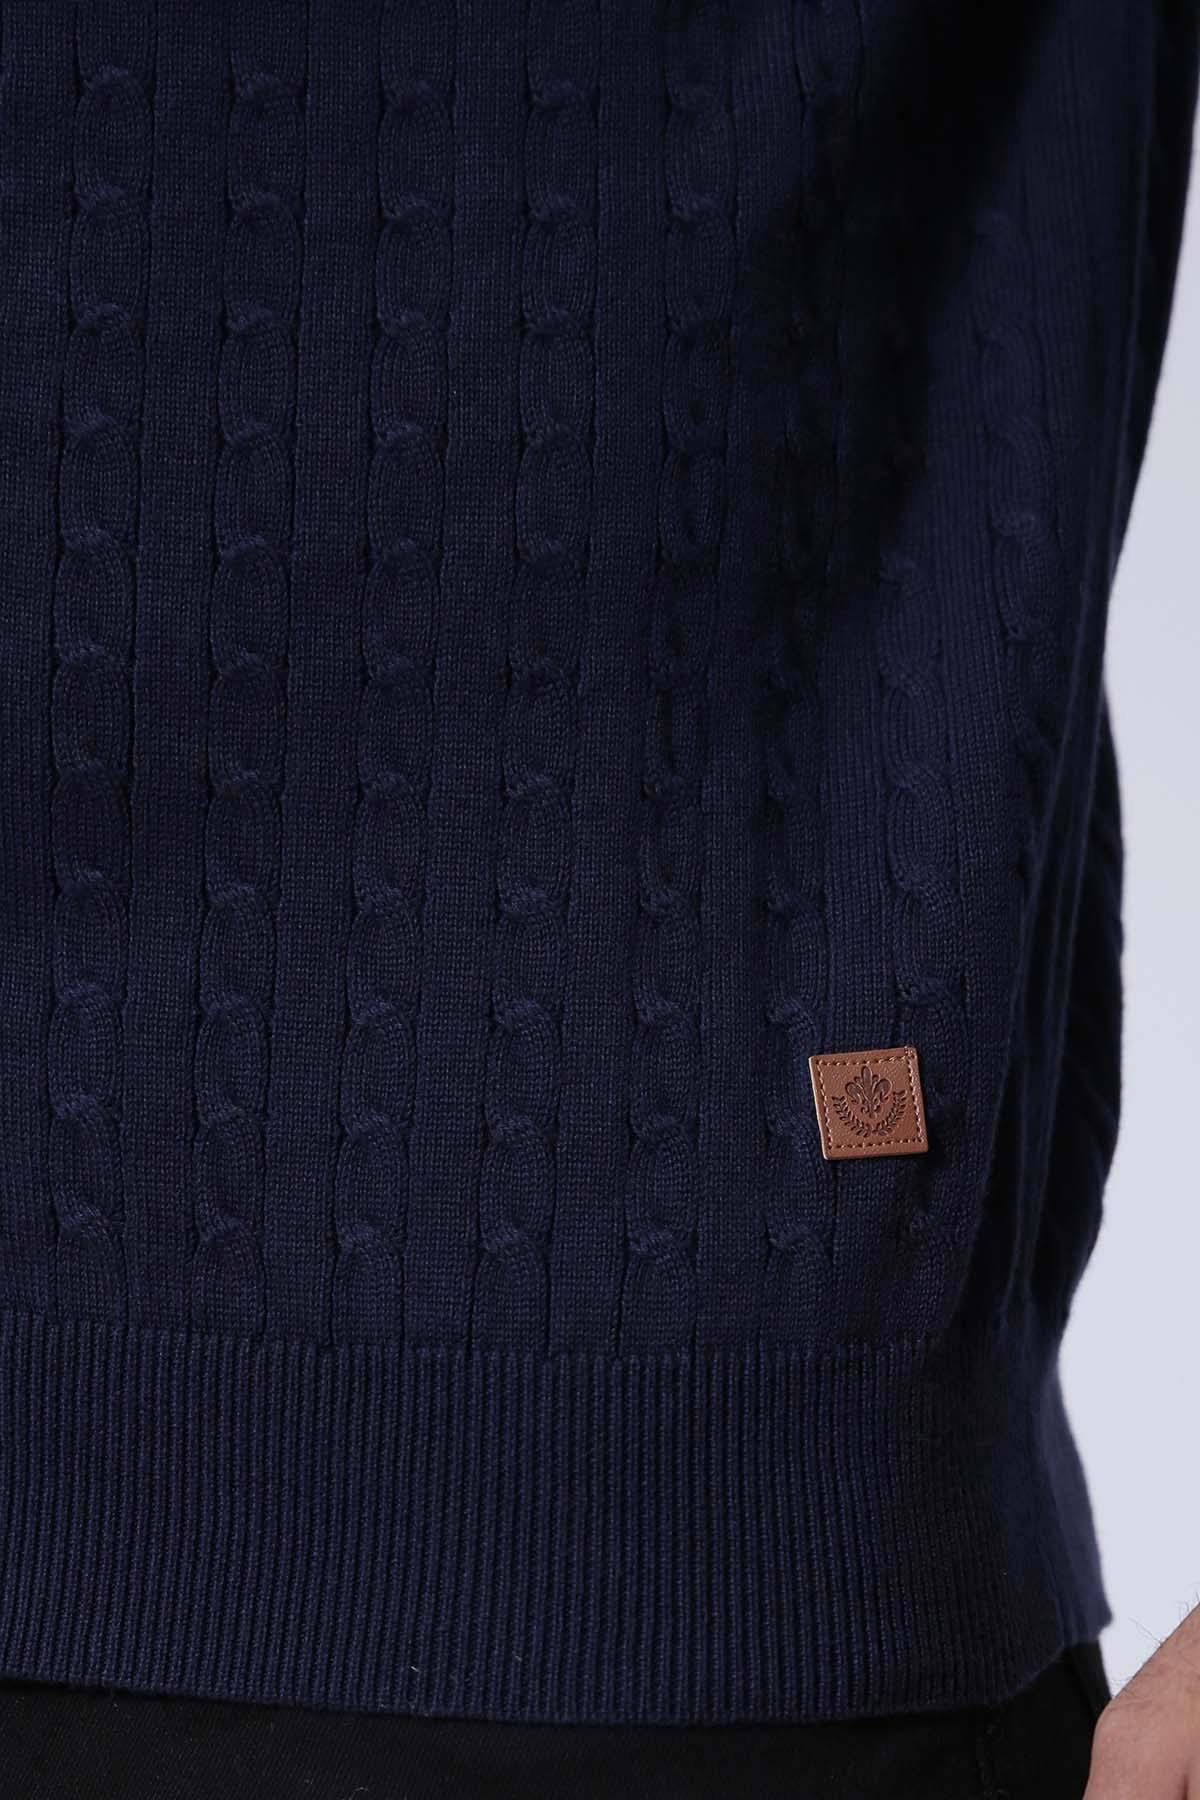 SWEATER ZIPPER FULL SLEEVE NAVY - Charcoal